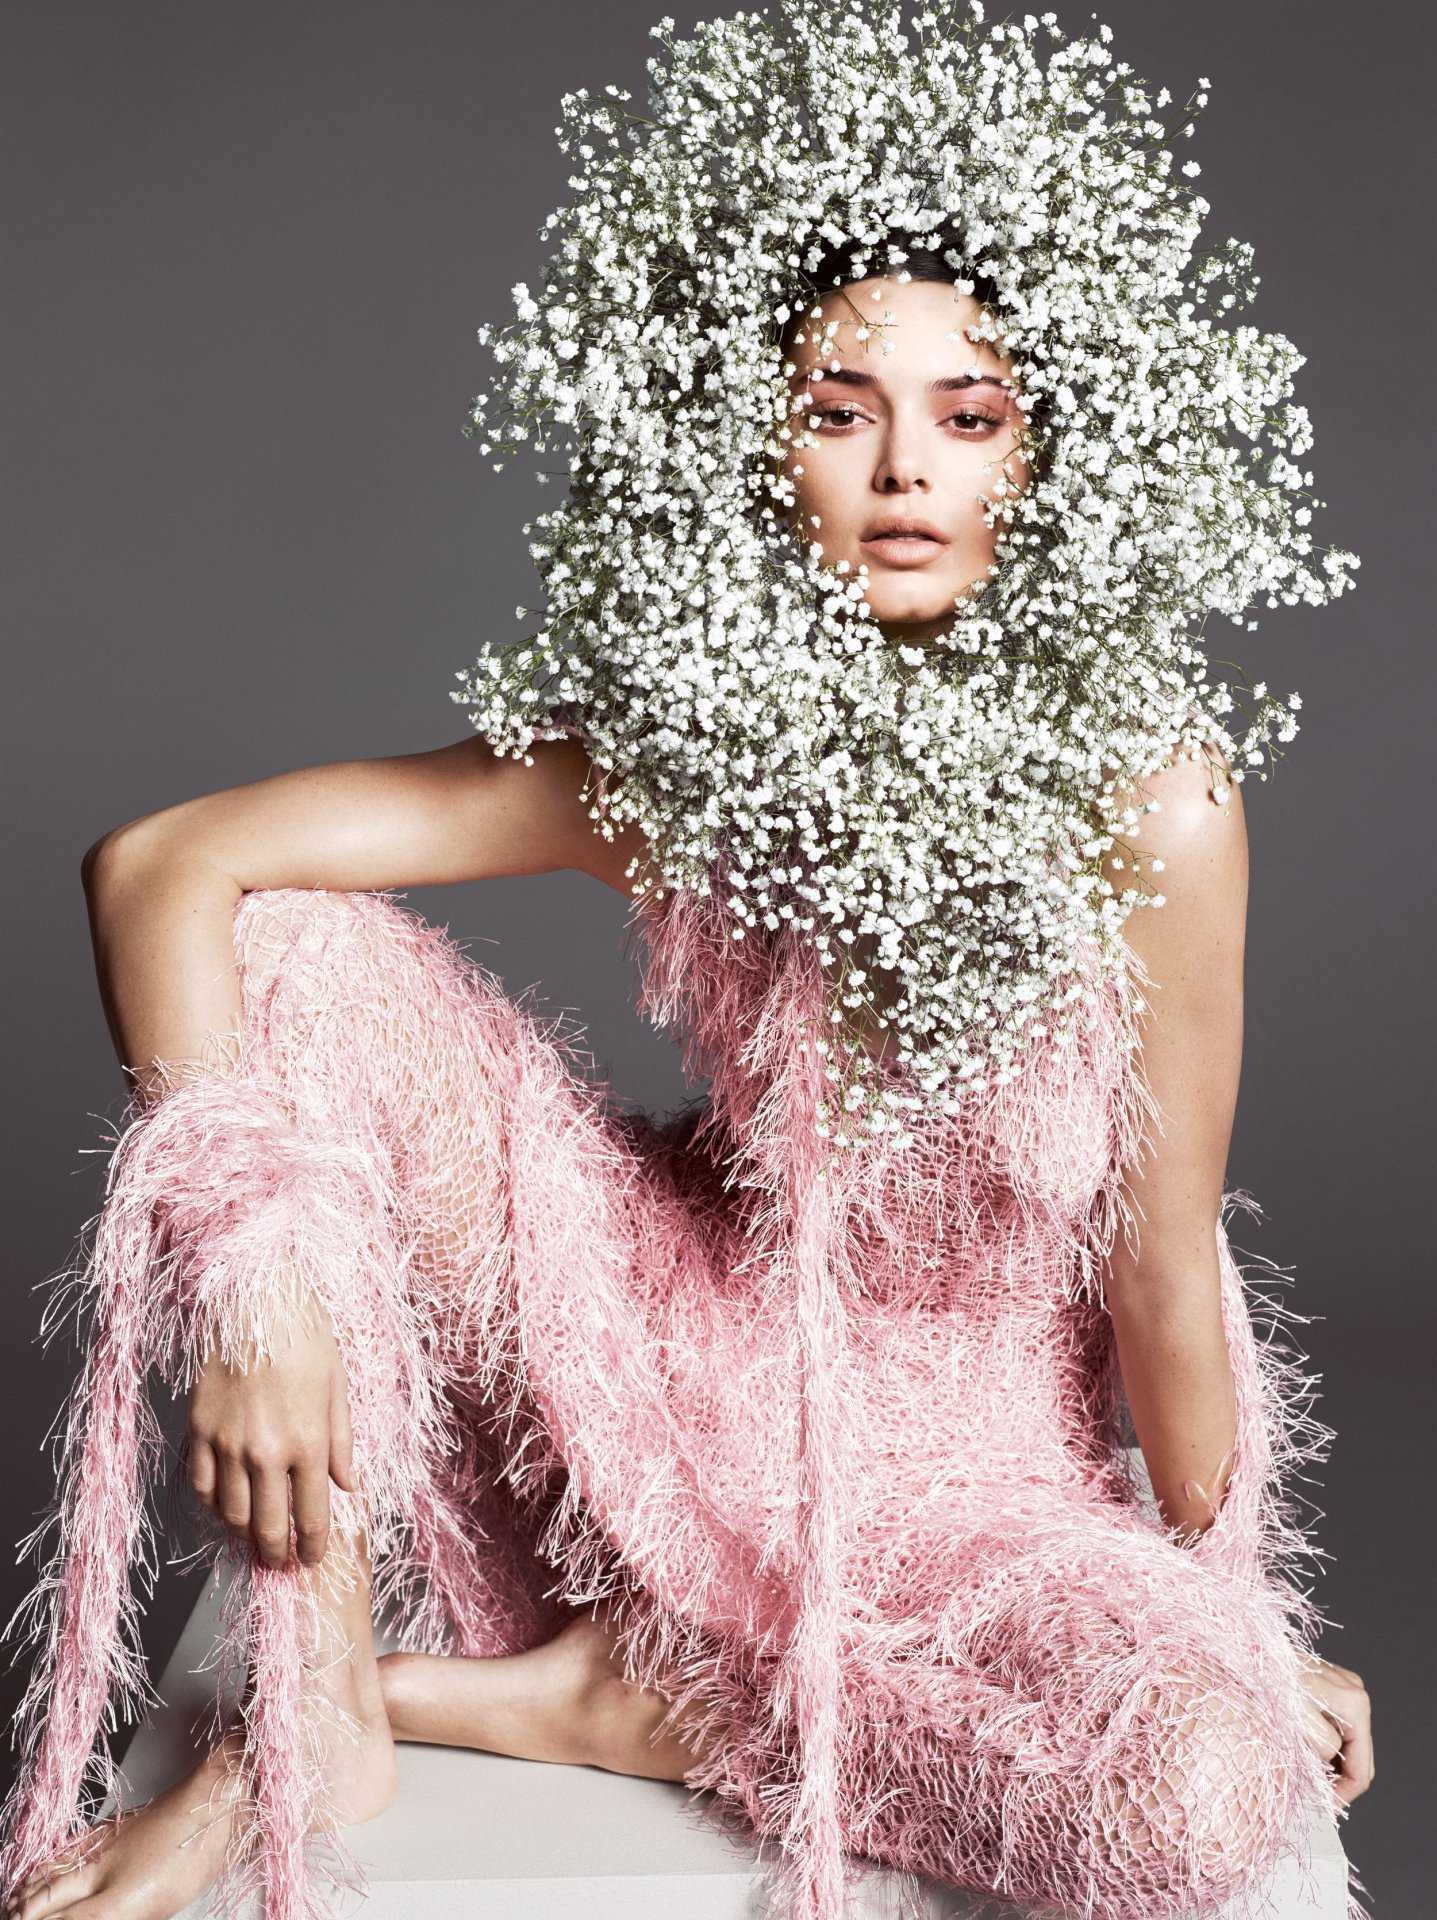 Kendall Jenner in Vogue Magazine Photoshoot – April 2018